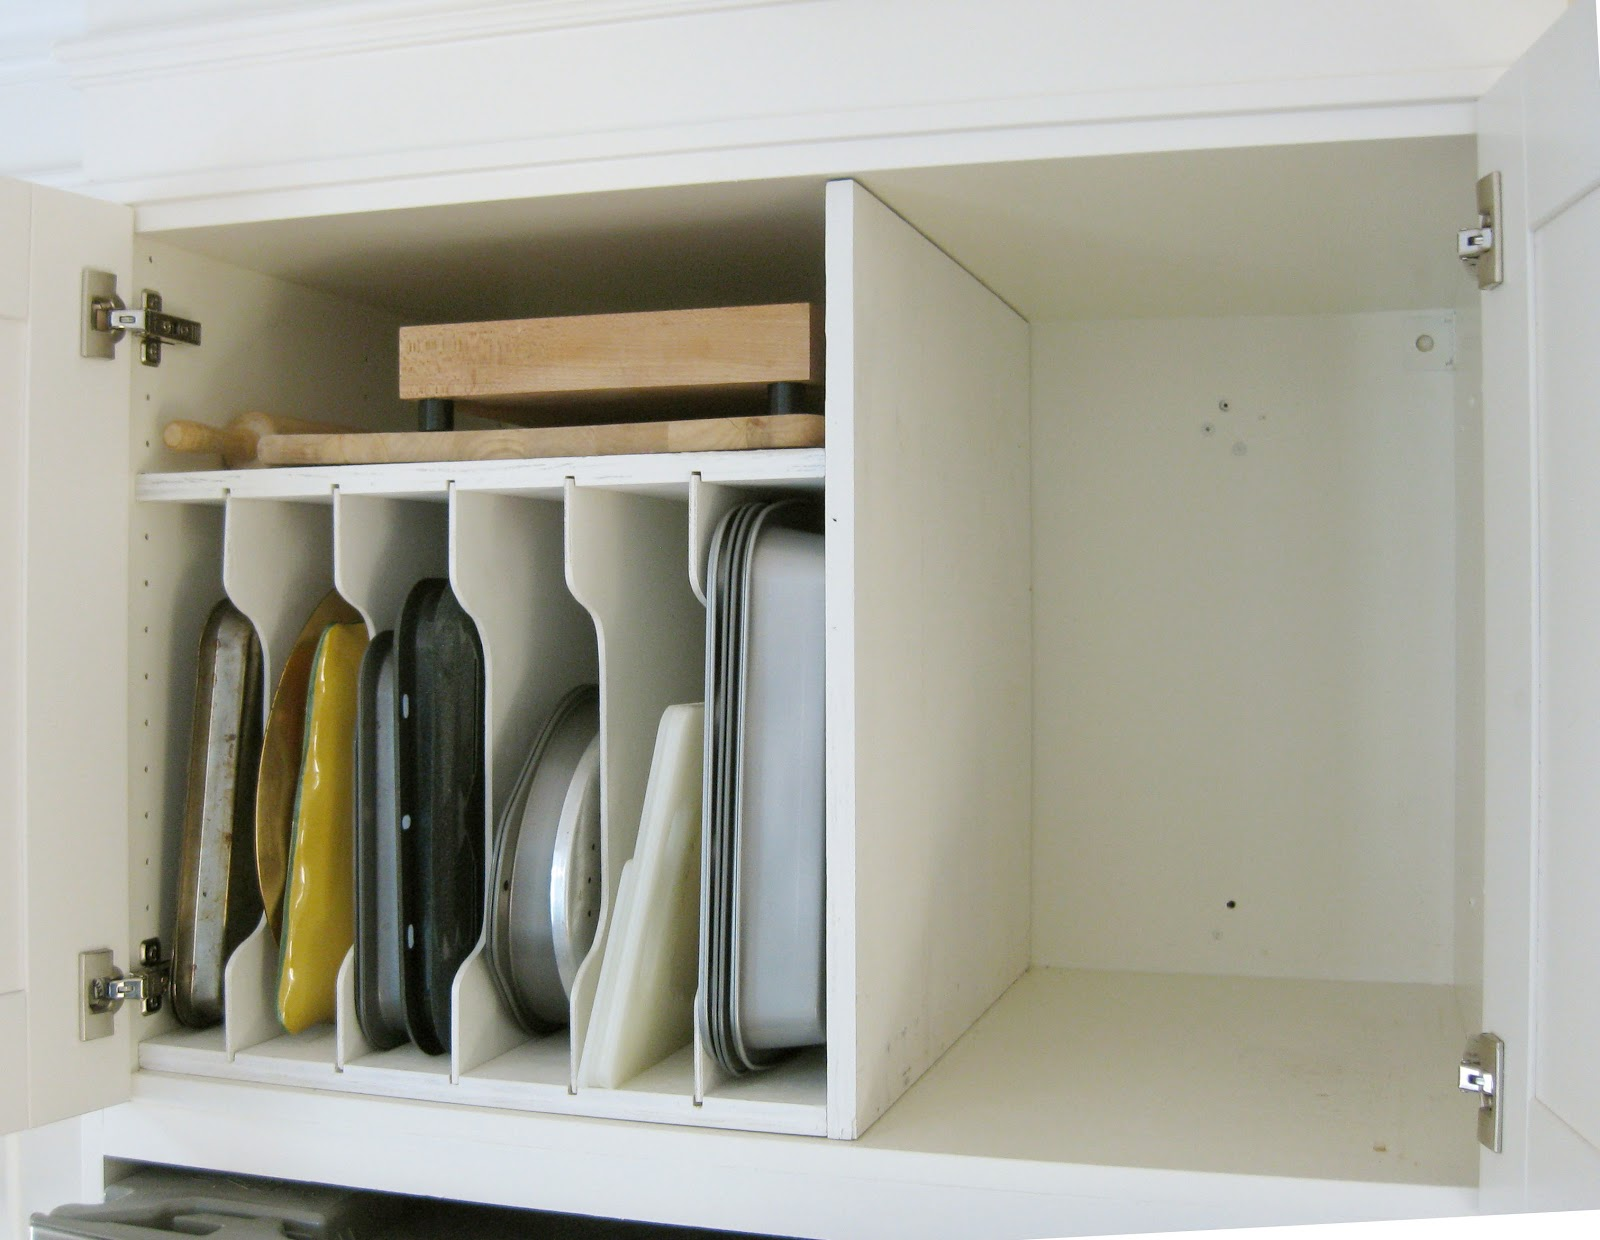 Kitchen Organization How To Install Pull Out Drawers In Cabinet